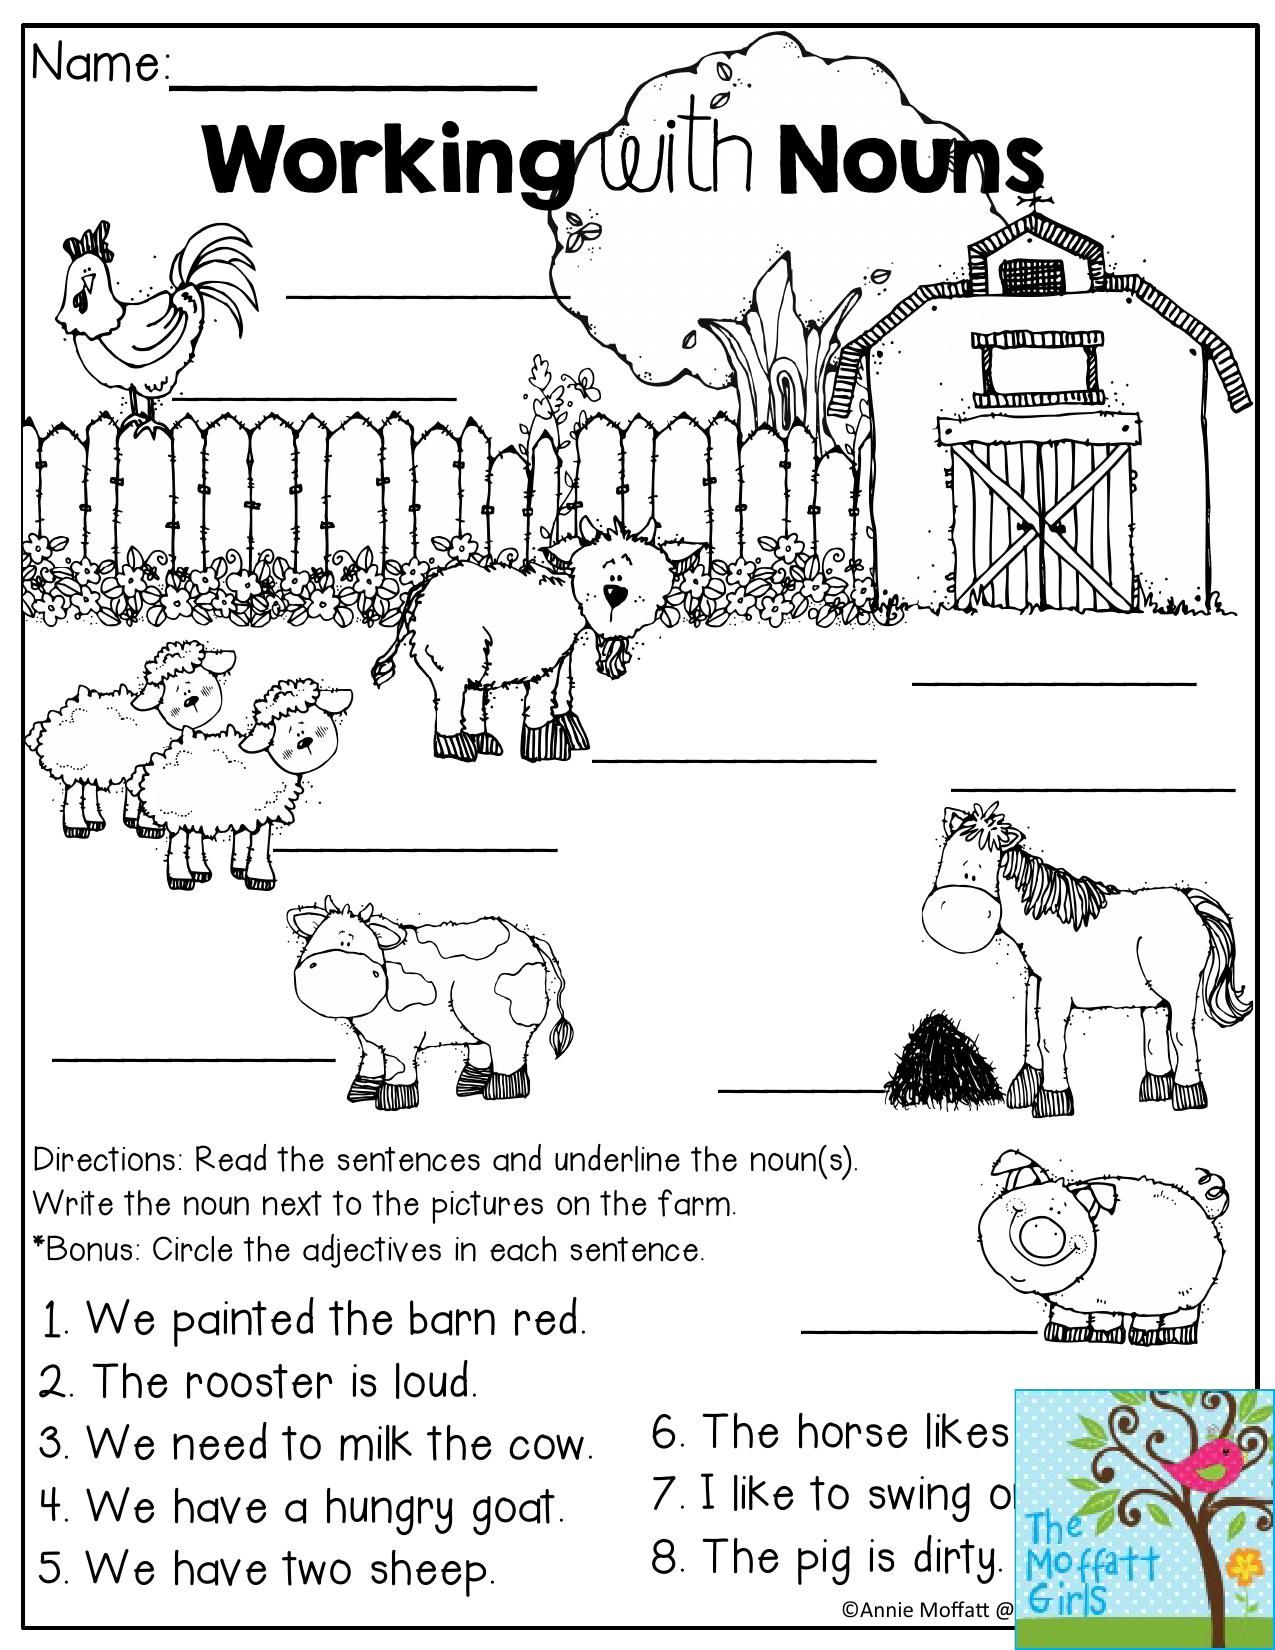 Working With Nouns On The Farm Read The Sentences And Underline The Noun Then Write The